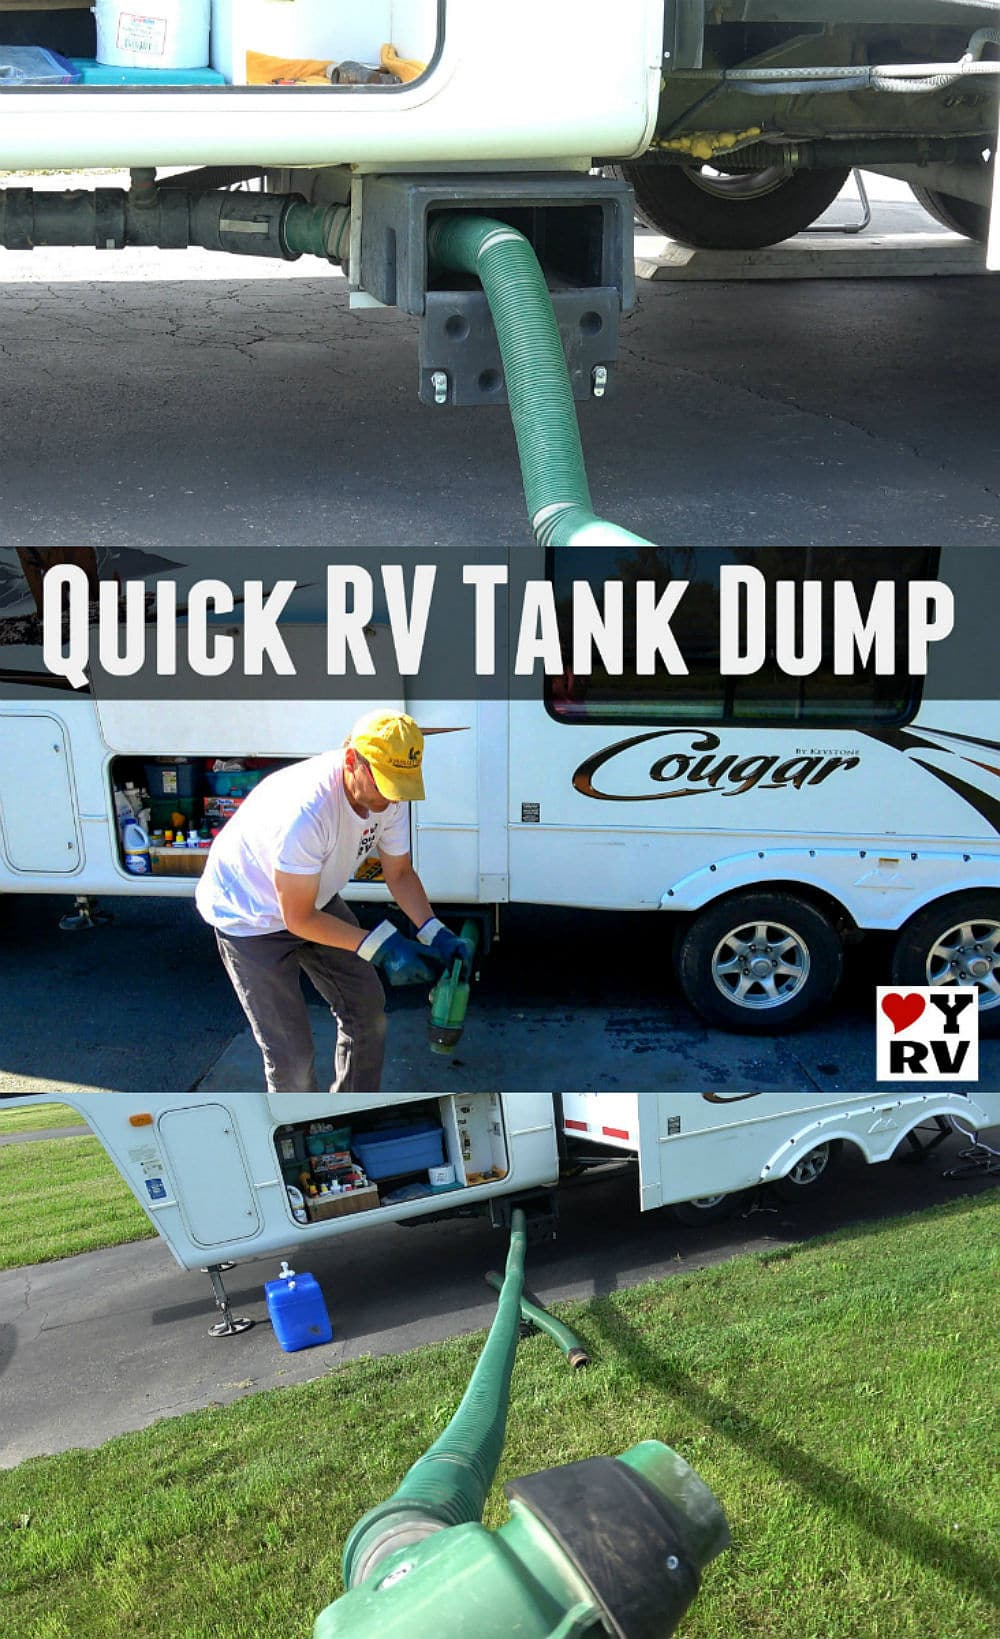 Super Quick RV Tank Dumping using my custom built sewer system with the Waste Master hose - https://www.loveyourrv.com